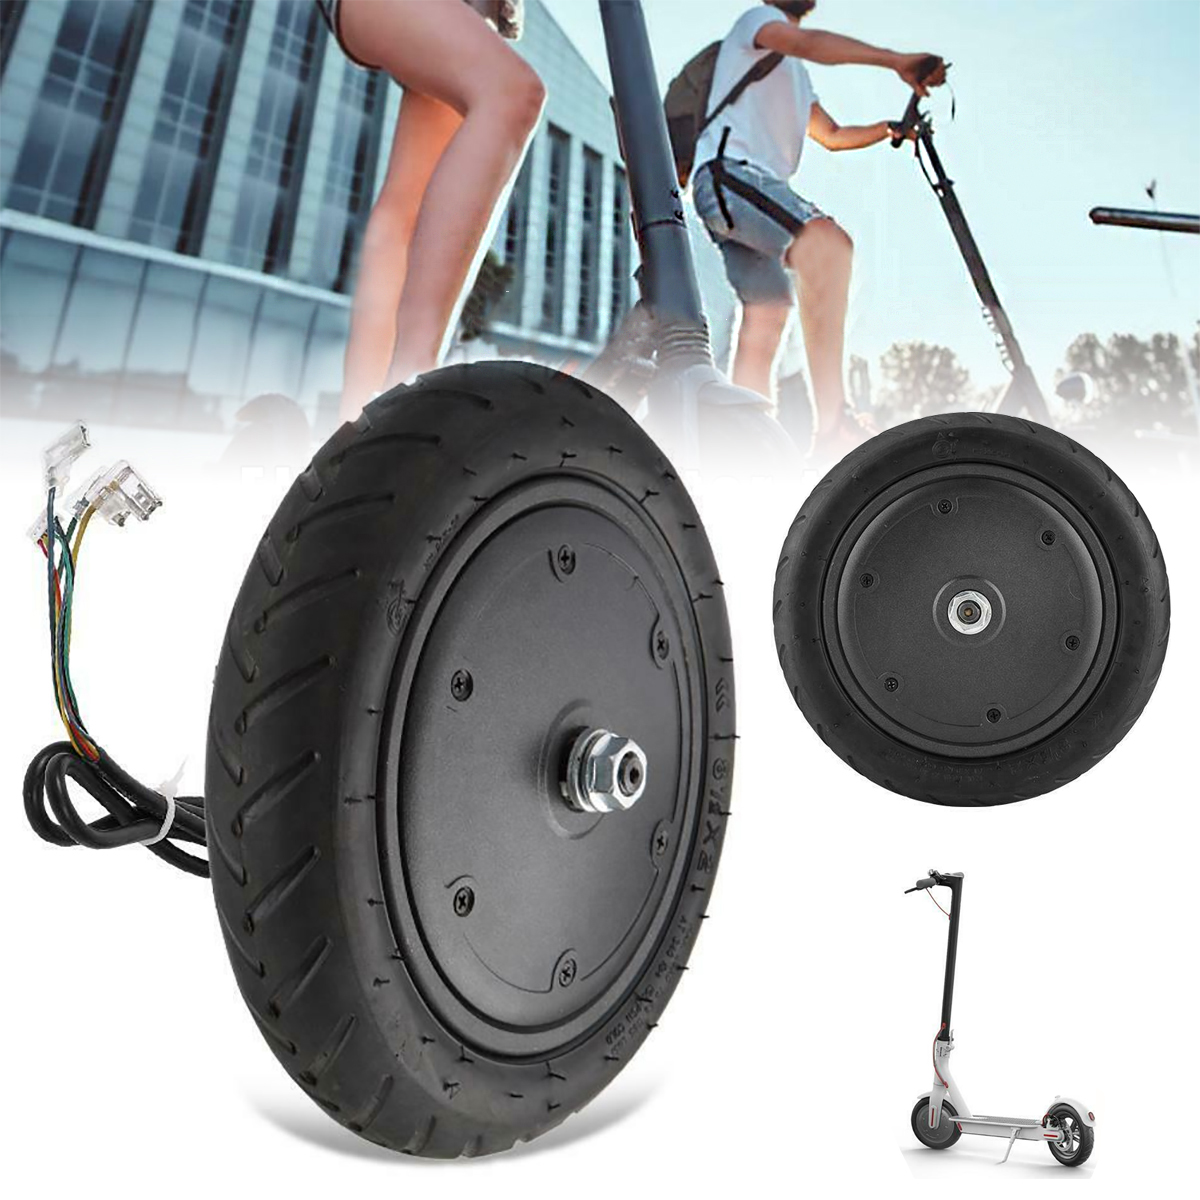 350W 9.8 Inch Scooter Motor Explosion Proof Brushless Hub Motor Wheels Tire Ideal Replacement for M365 Electric Scooter